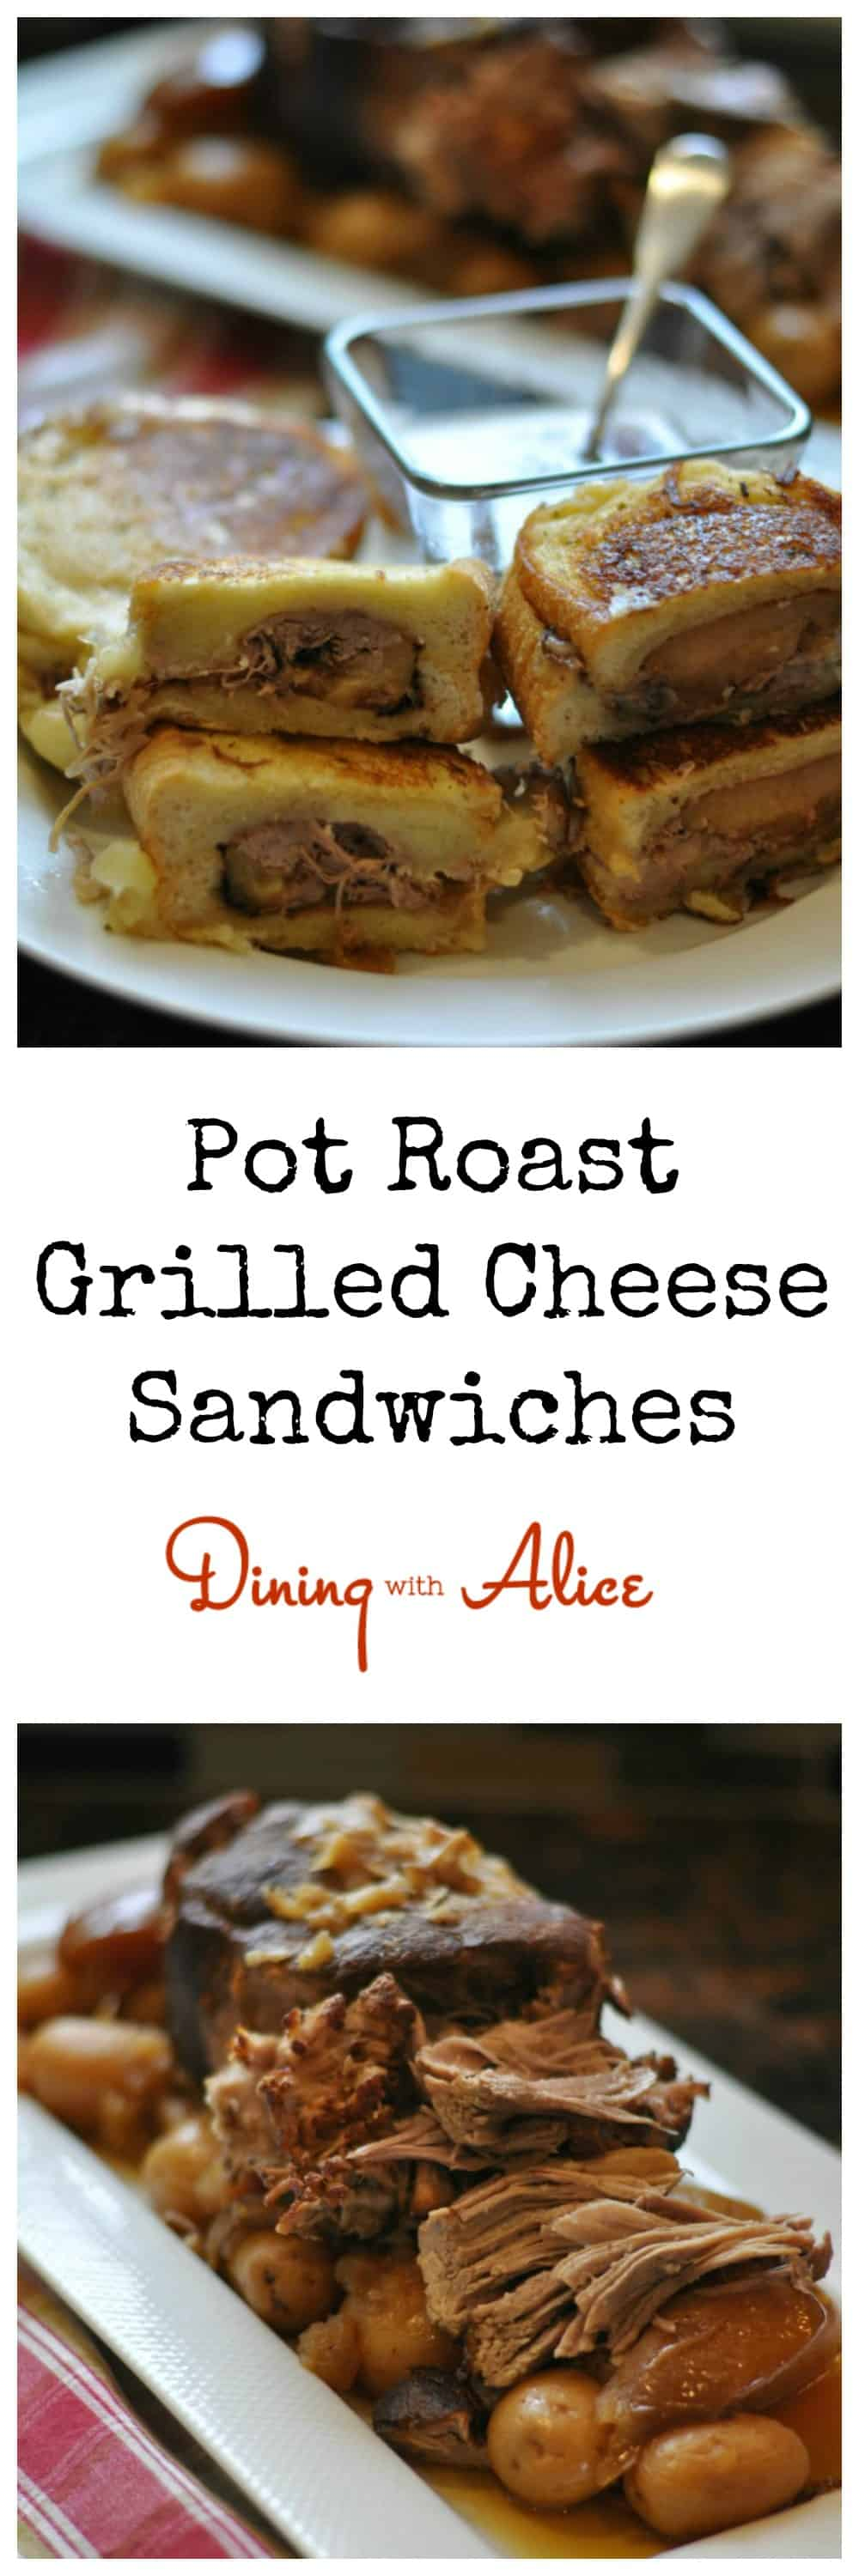 Pot Roast Grilled Cheese Sandwiches Dining With Alice